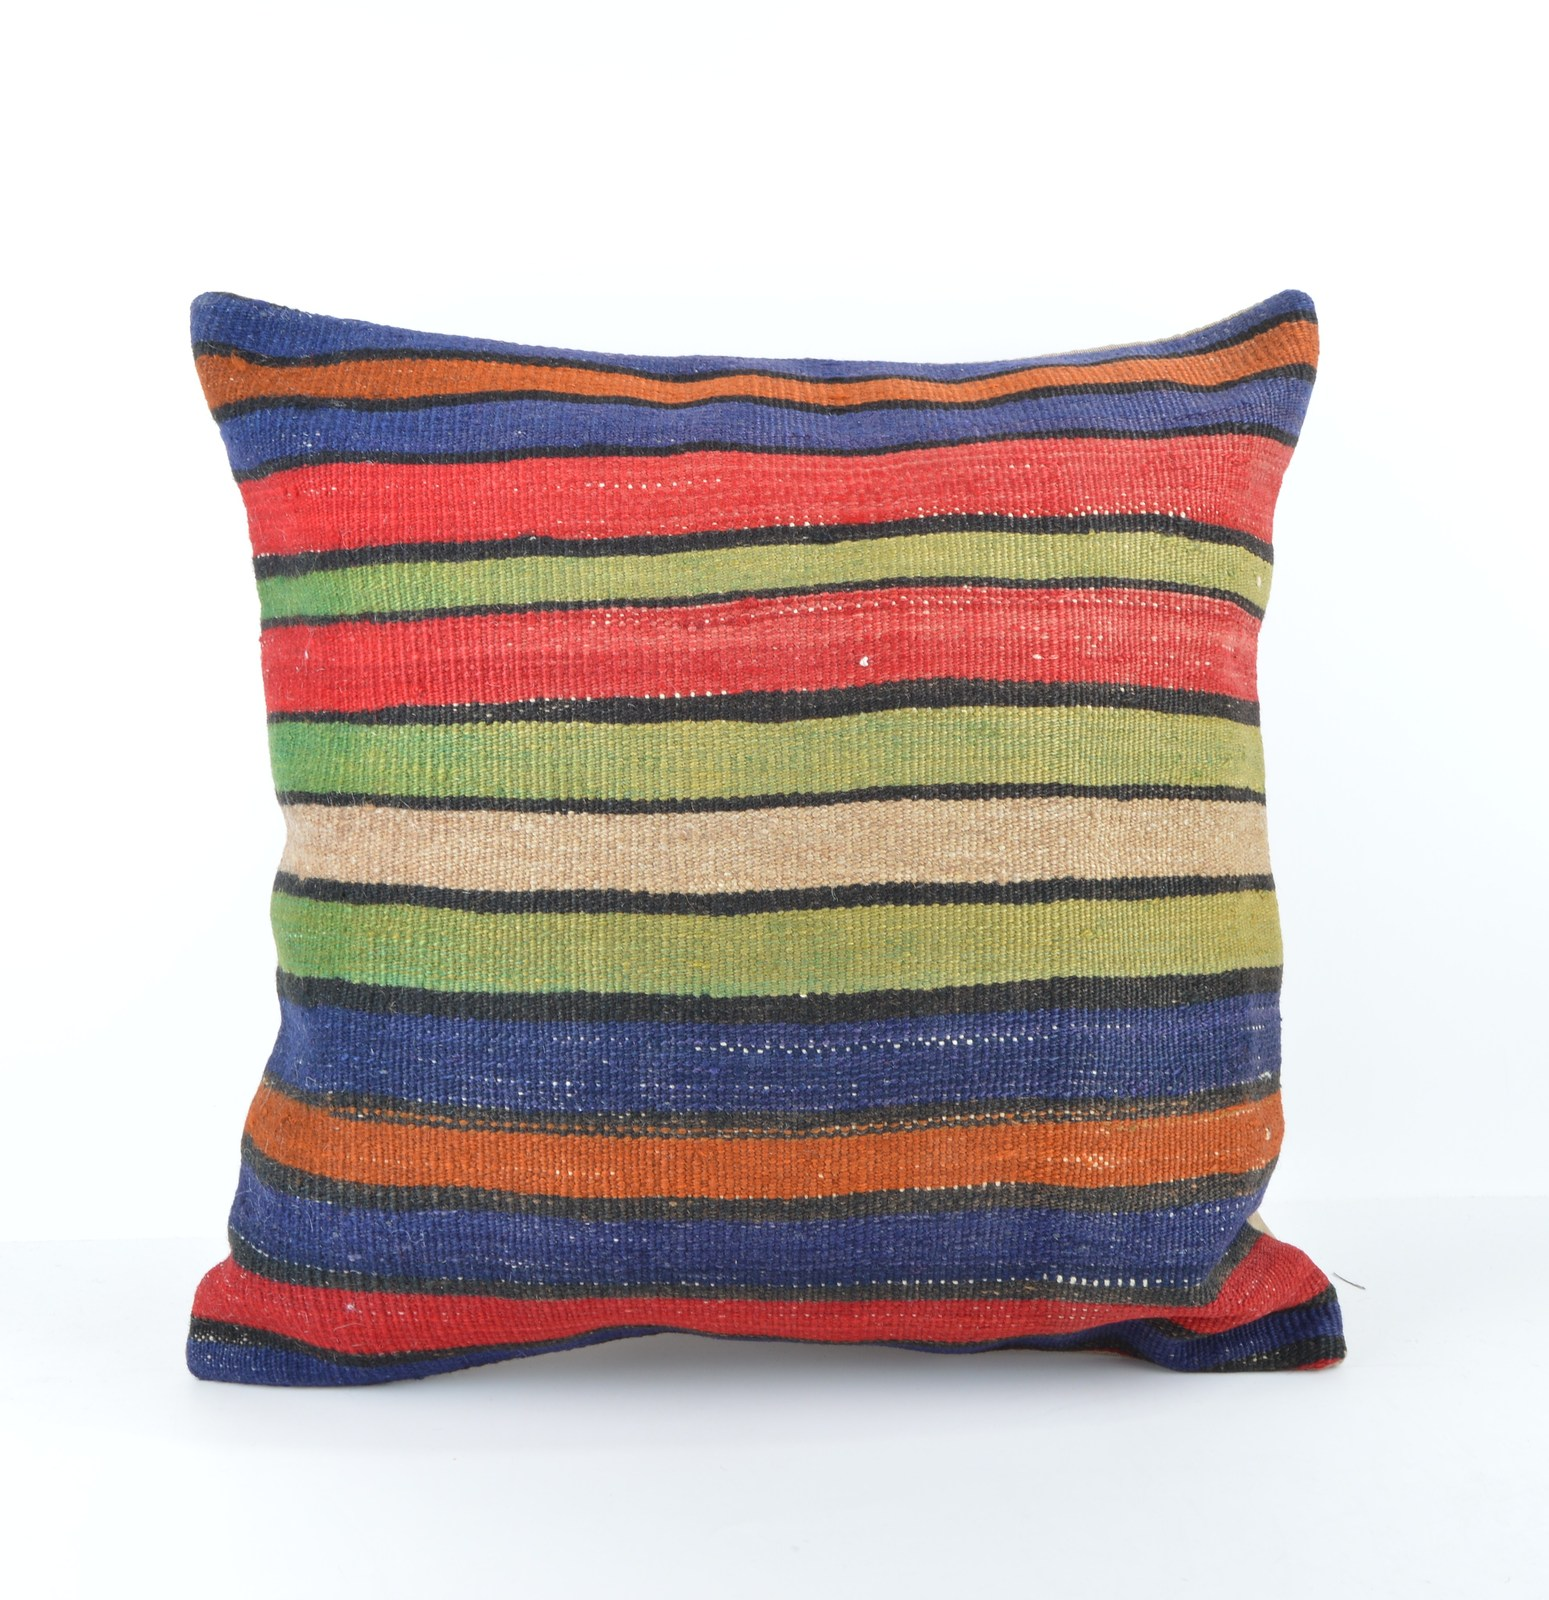 Big large pillow 20x20 couch pillow large cushion cover for Couch cushion pillows